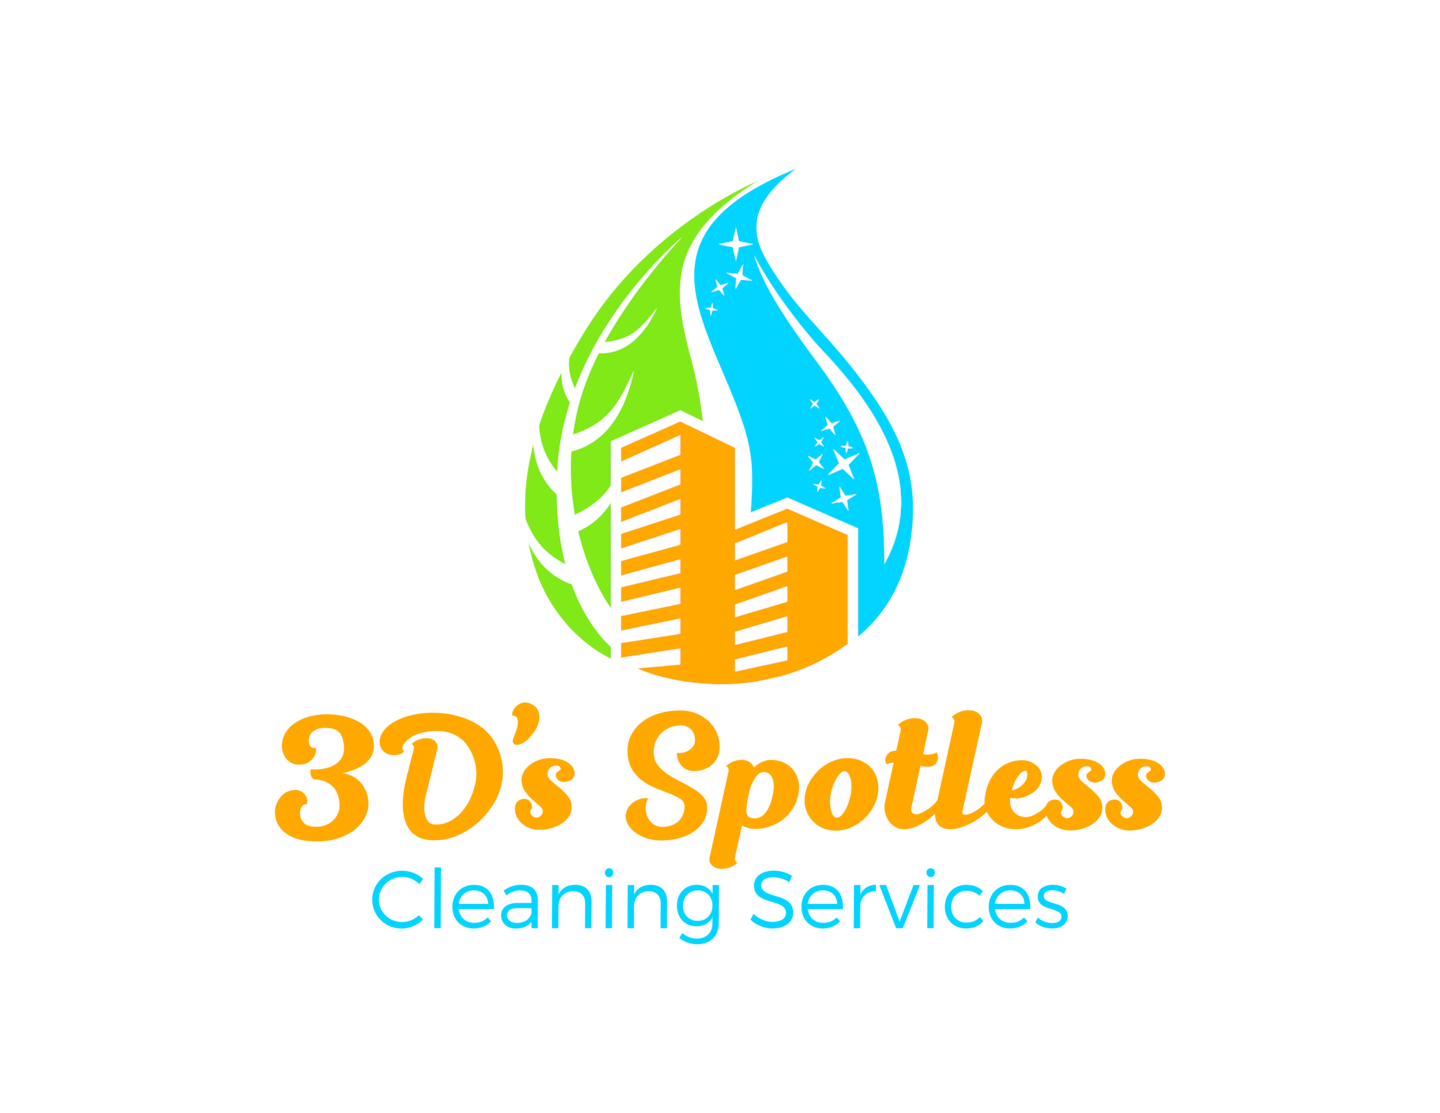 3D's Spotless Cleaning Services